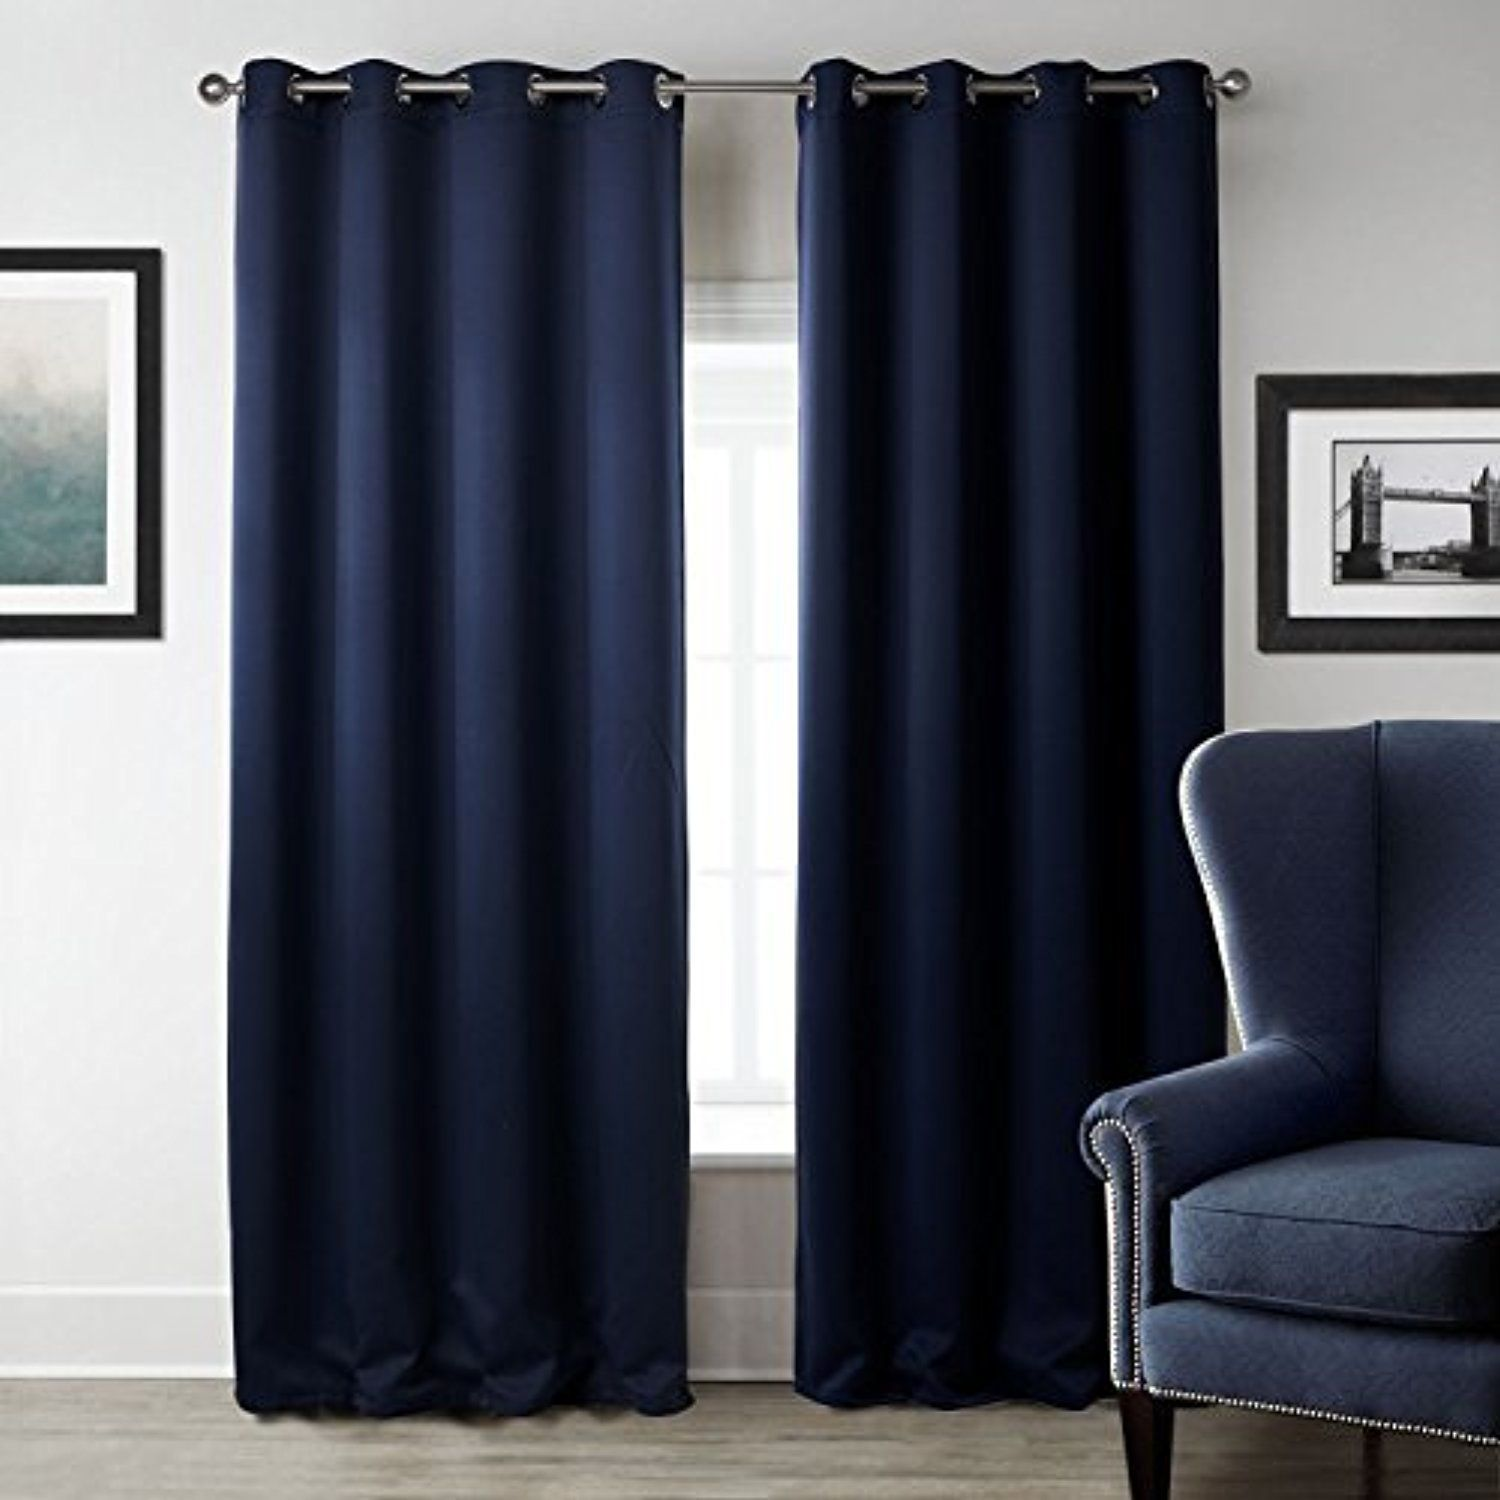 Sleep Well Blackout Curtains Toxic Free Energy Smart Thermal Insulated 52 W X 84 L Inch Grommet Top Set Of 2 Panel Curtains Living Room Curtains Bedroom Blinds